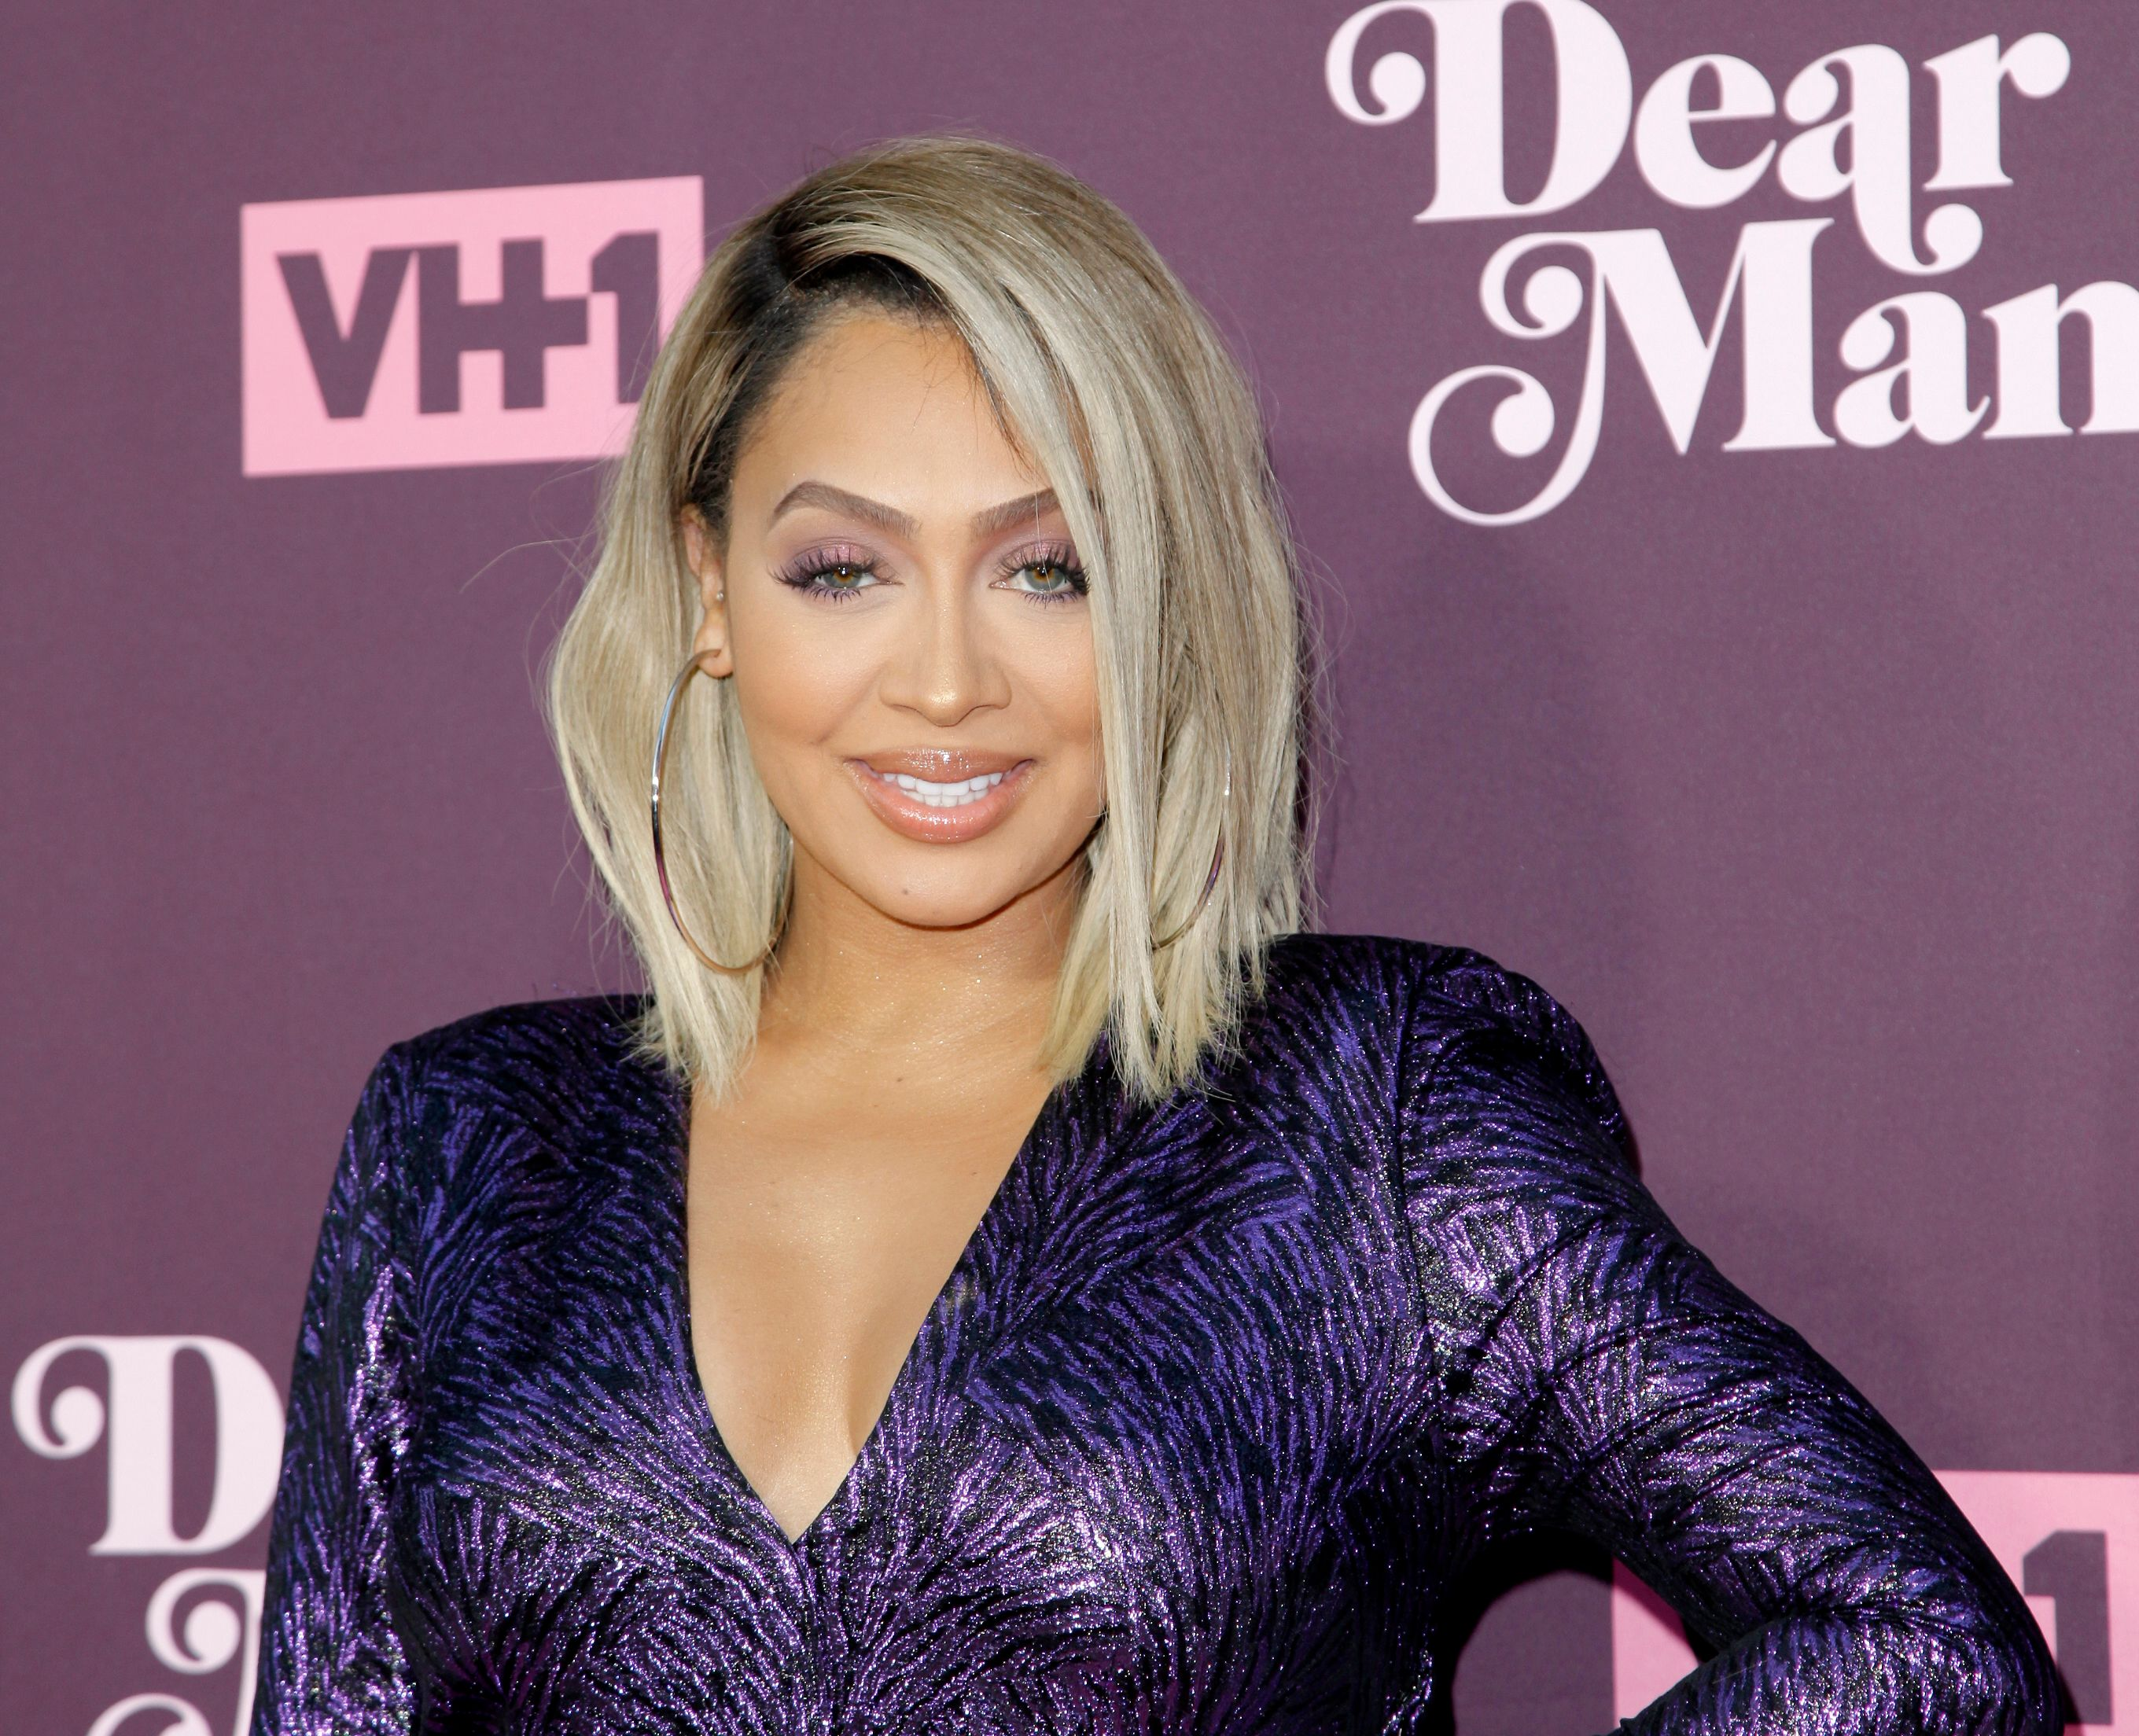 "La La Anthony at VH1's 3rd annual ""Dear Mama: A Love Letter To Moms"" screening at The Theatre at Ace Hotel on May 3, 2018 